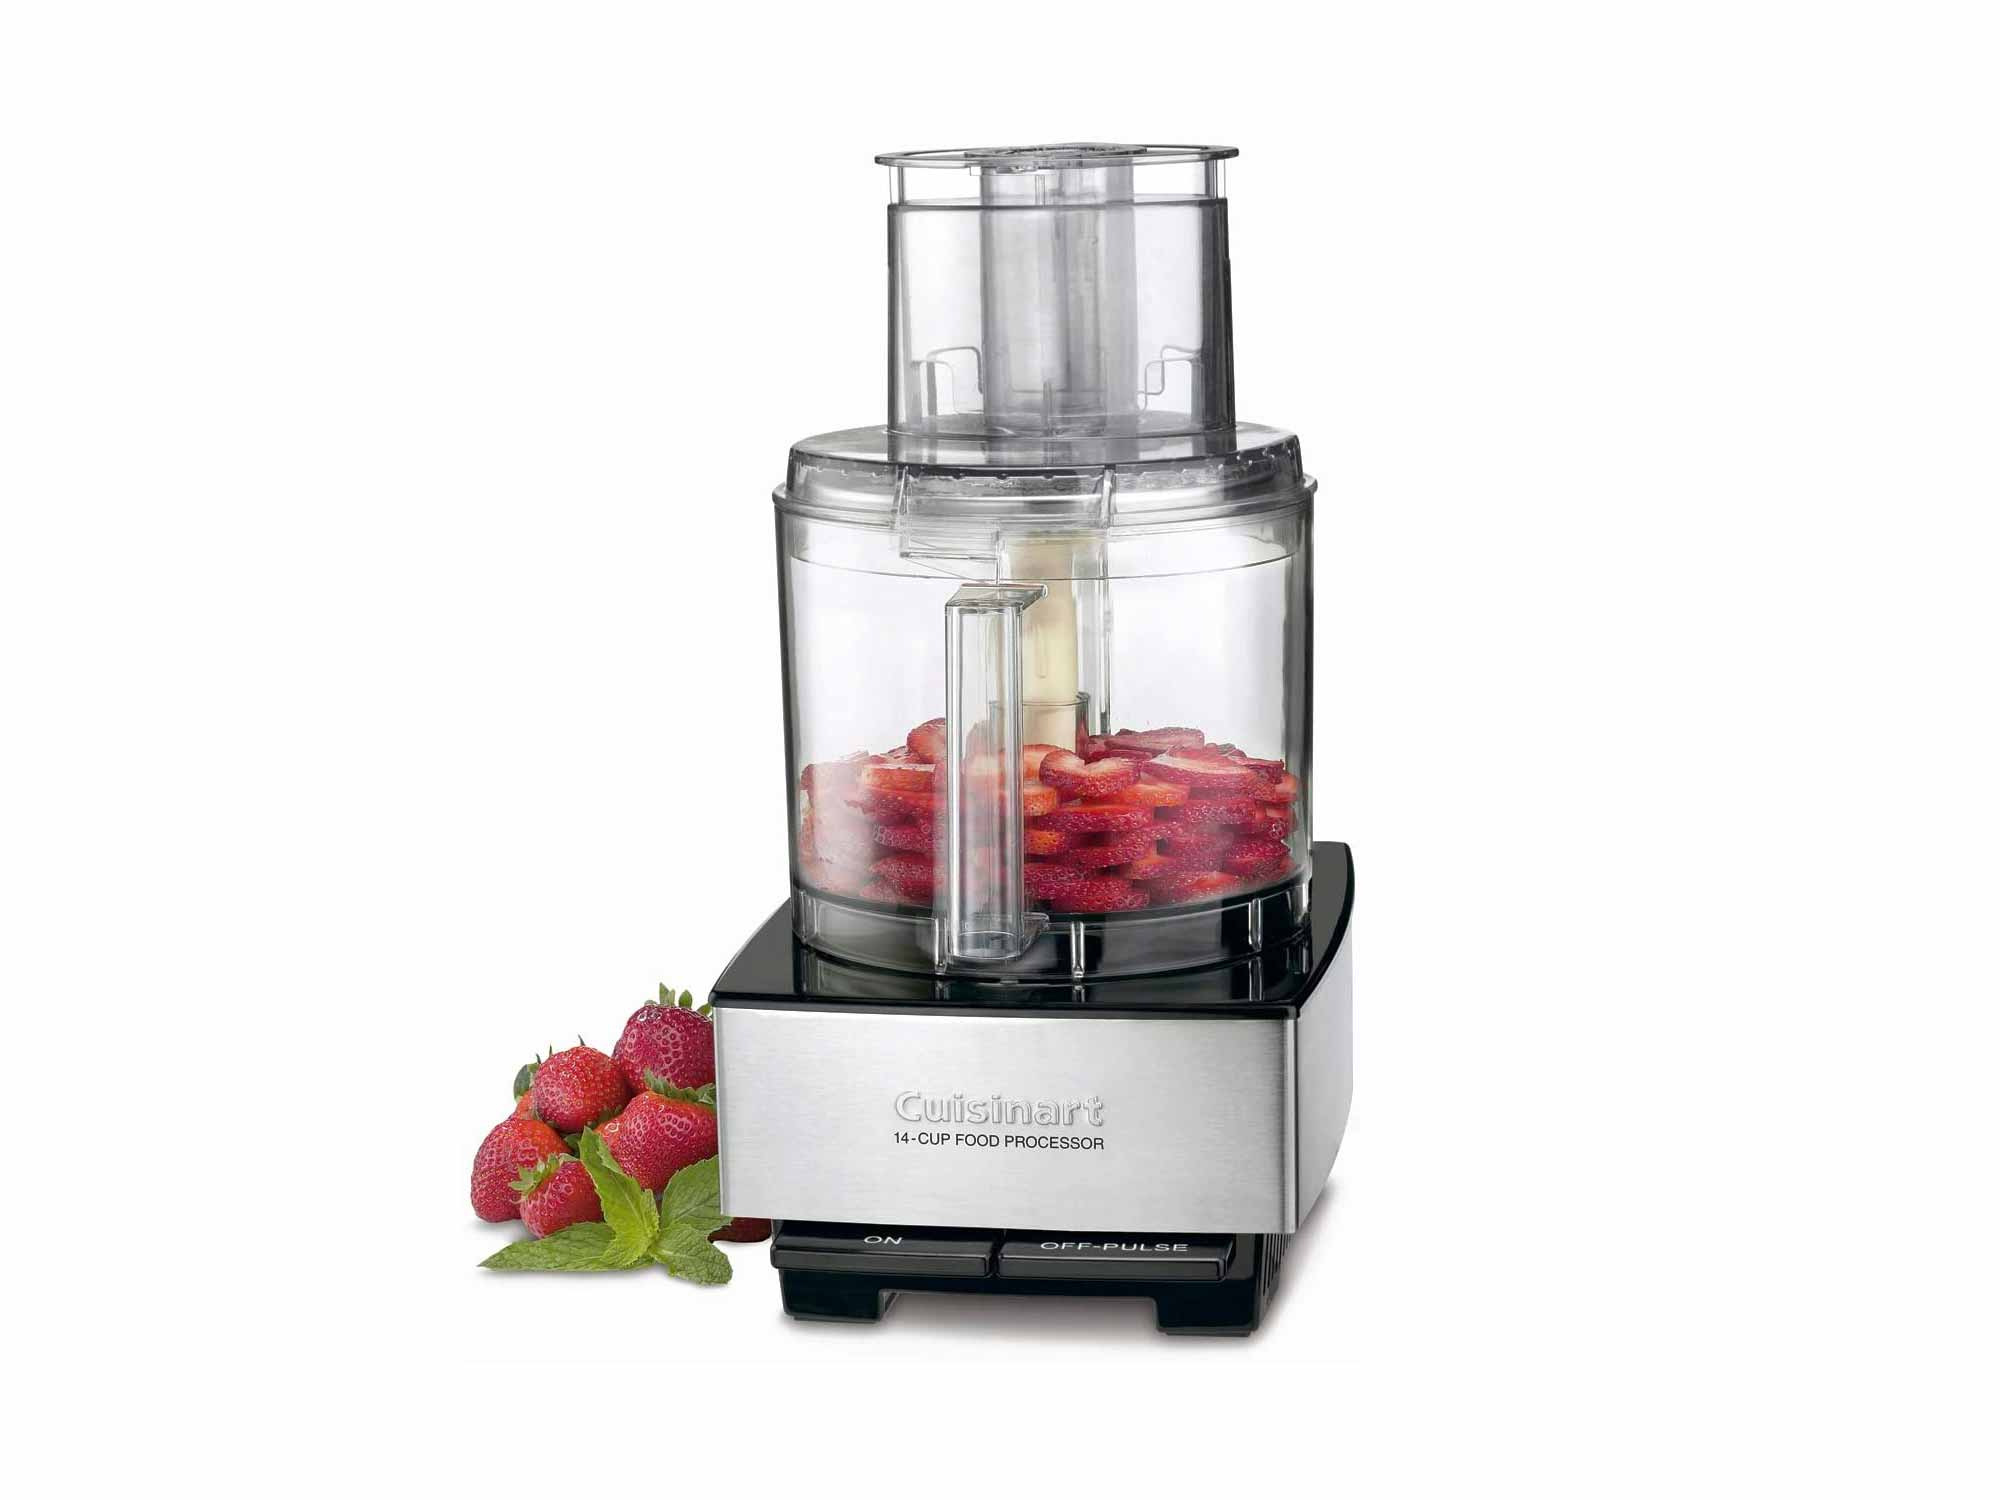 Cuisinart 14-Cup Food Processor, Brushed Stainless Steel - Silver